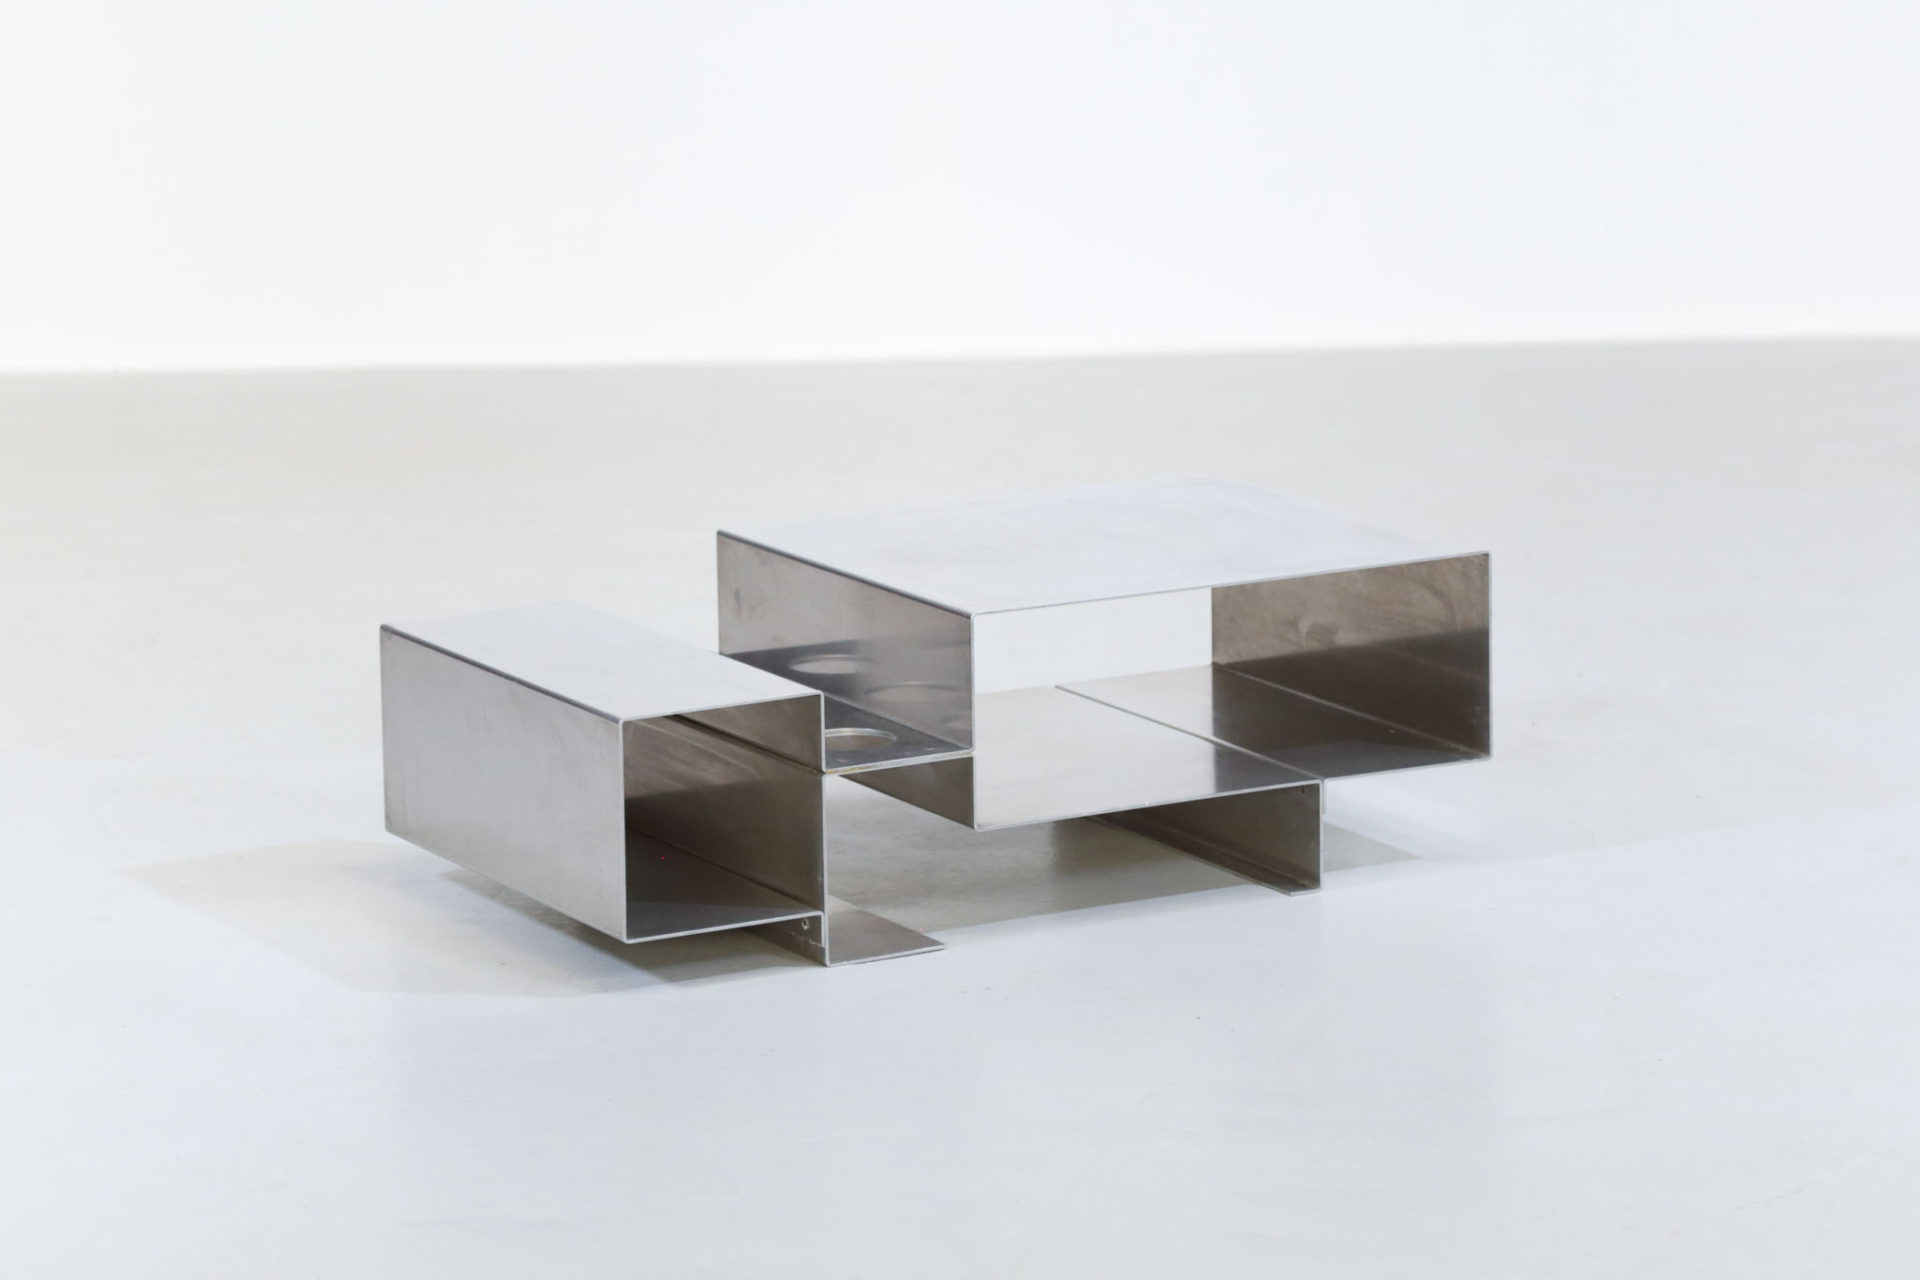 Table basse années 70 style michel boyer pergay17